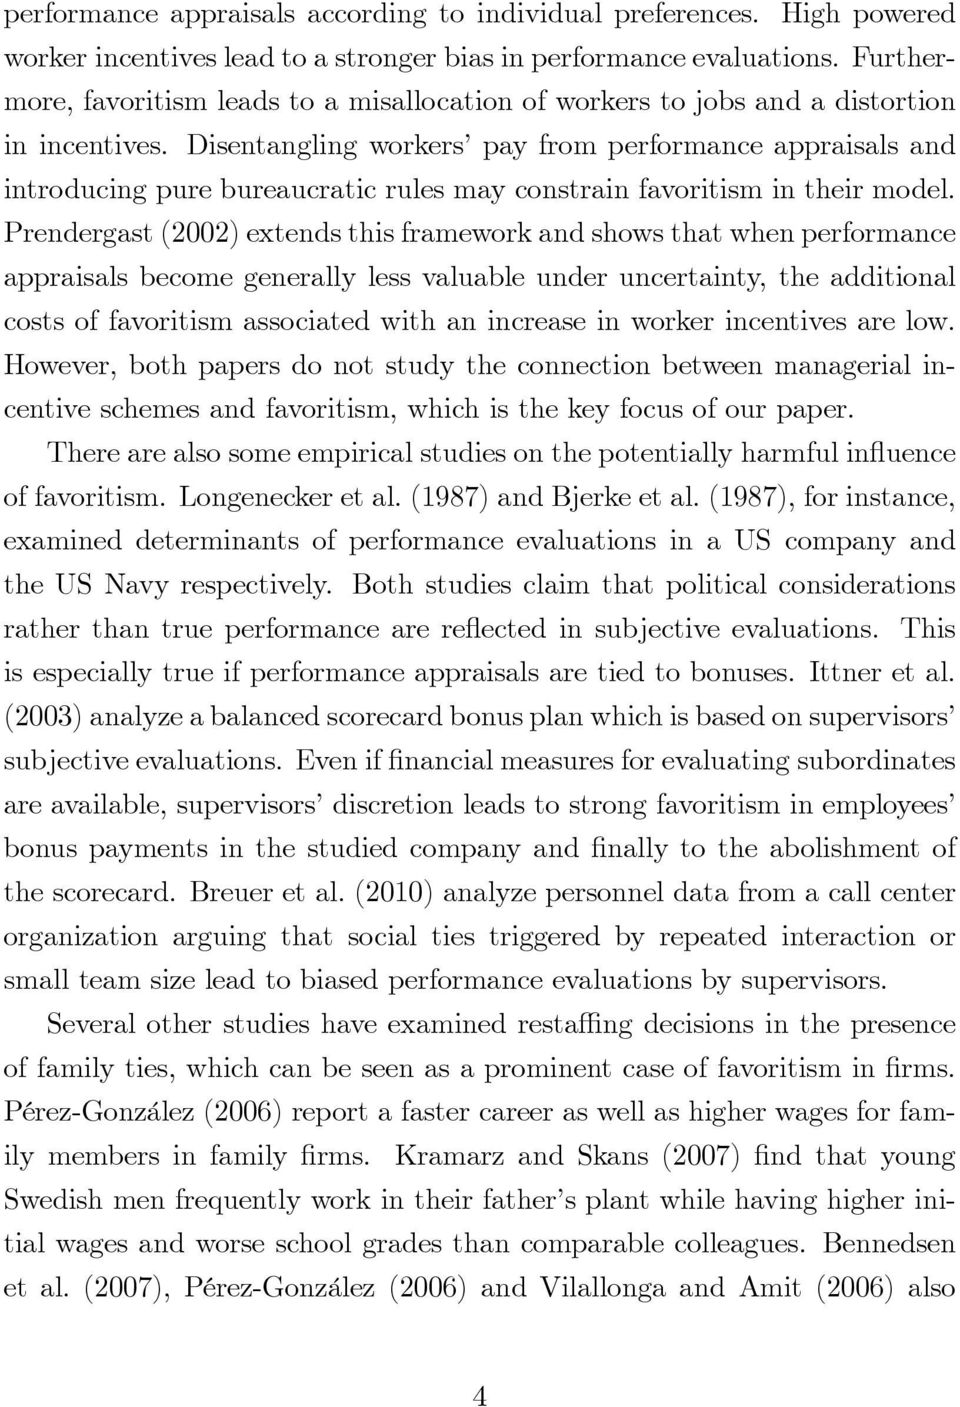 Disentangling workers pay from performance appraisals and introducing pure bureaucratic rules may constrain favoritism in their model.